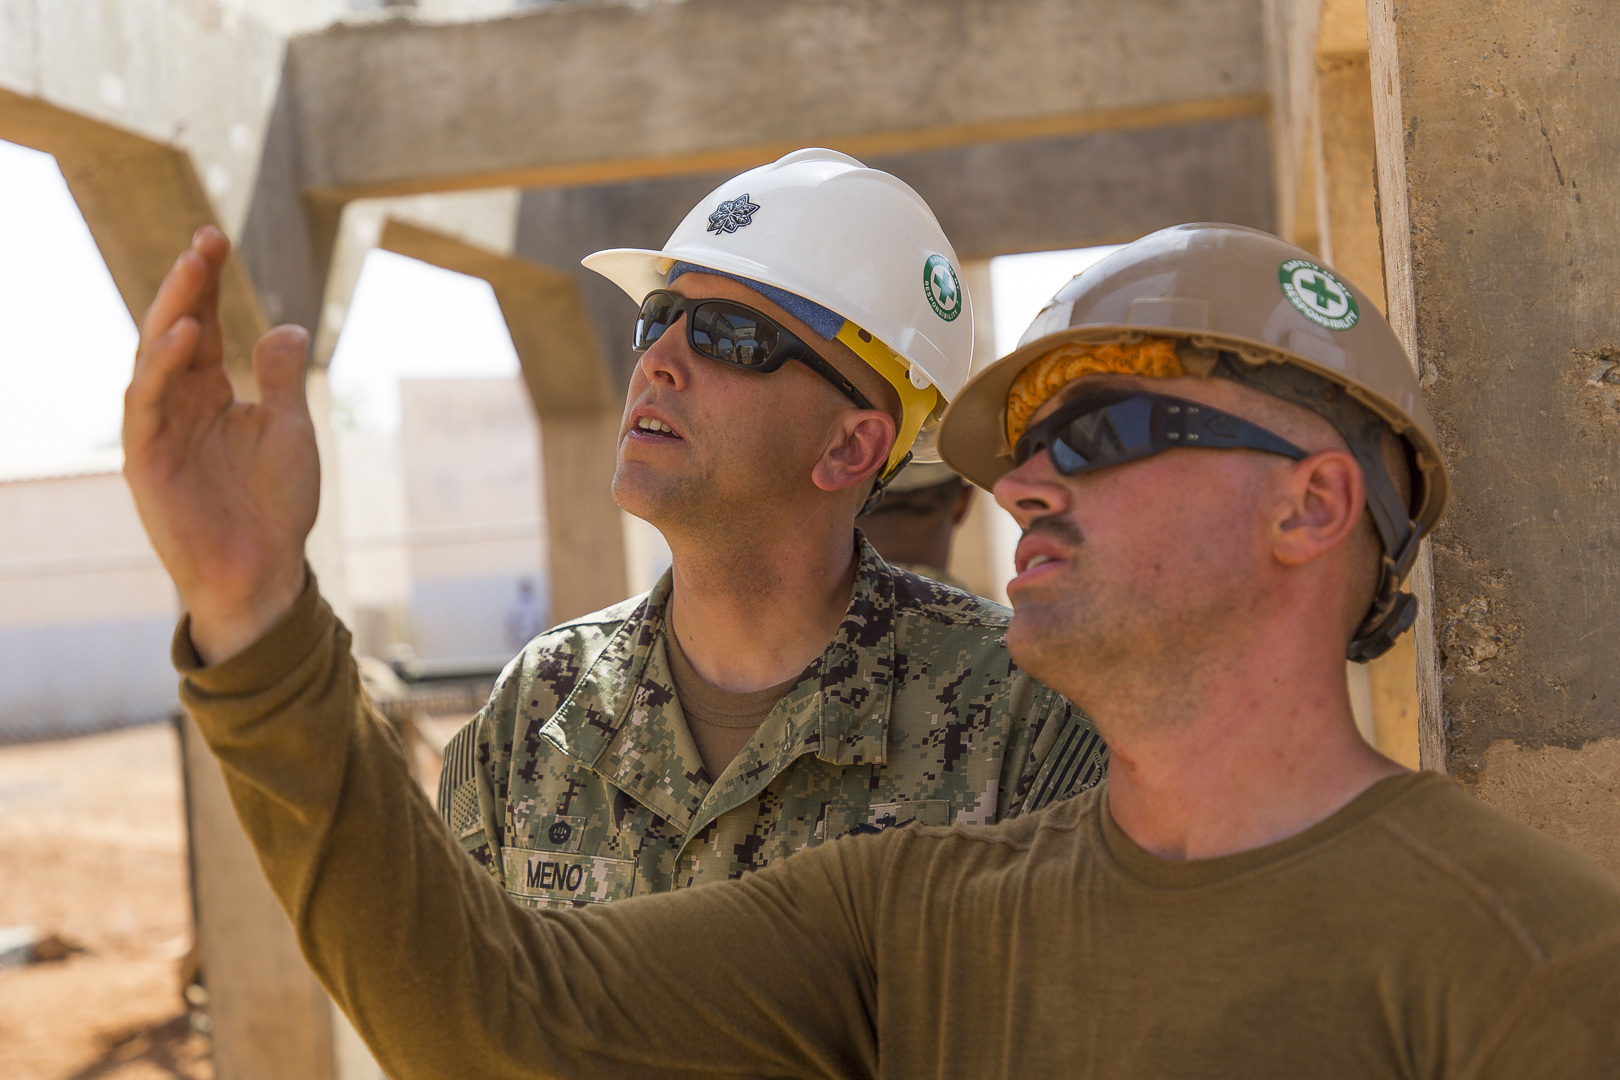 U.S. Navy Builder 2nd Class Erik Rau a Seabee assigned to Naval Mobile Construction Battalion 1, Detachment-Horn of Africa (NMCB 1 Det-HOA), gives Civil Engineer Corps Cmdr. Michael Meno a tour of the construction site in Ali Oune, Djibouti, Sept. 19, 2018. Seabees with NMCB 1 Det-HOA are building a medical facility in Ali Oune in support of the Ministry of Health for Djibouti. (U.S. Air National Guard photo by Master Sgt. Andrew Sinclair)